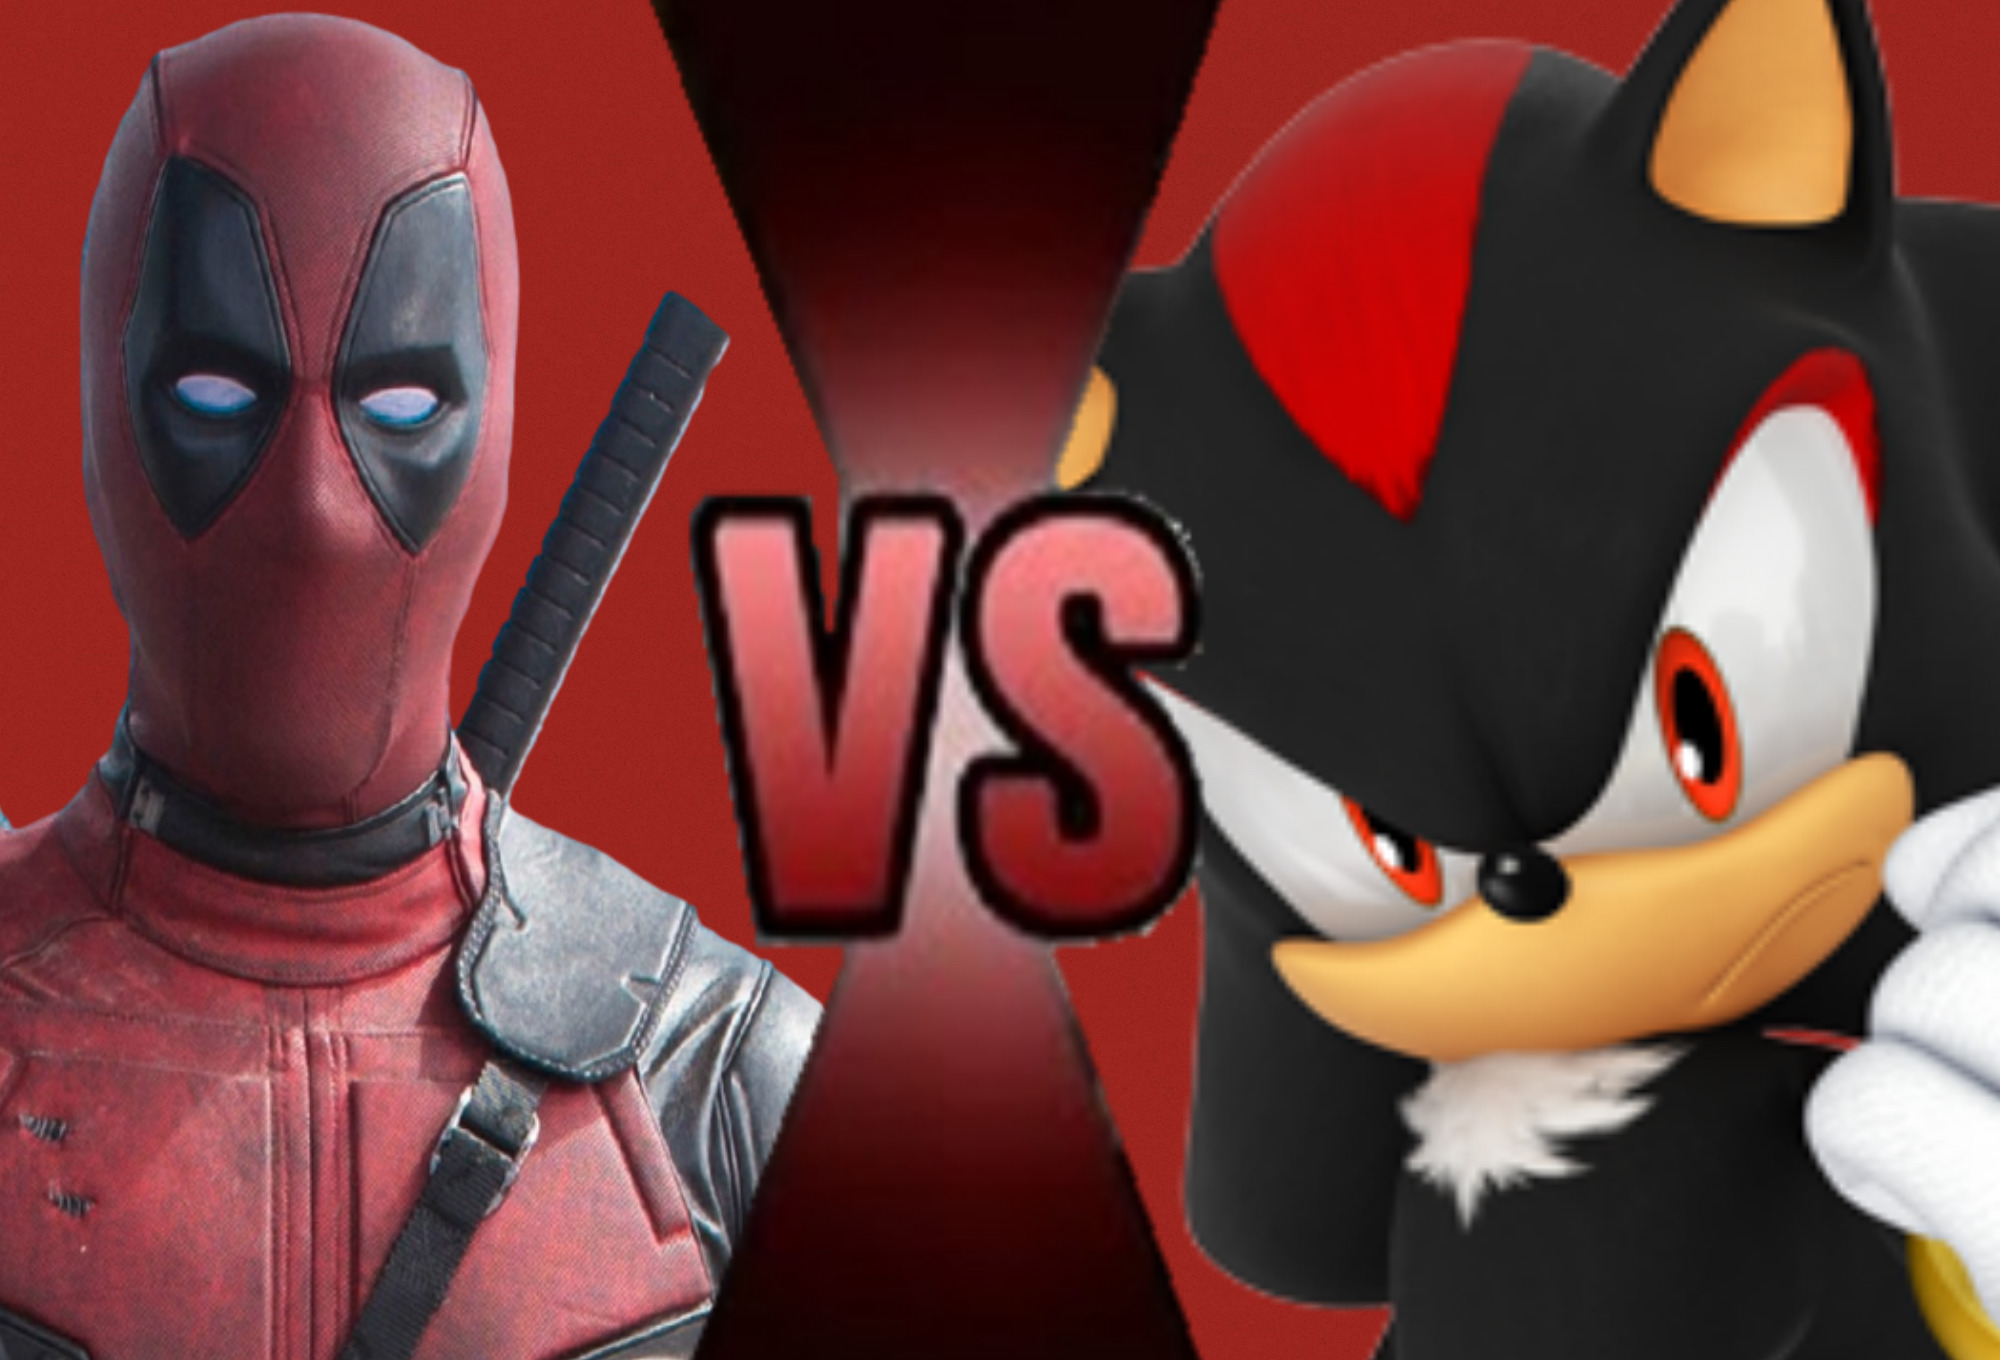 shadow the hedgehog date quiz